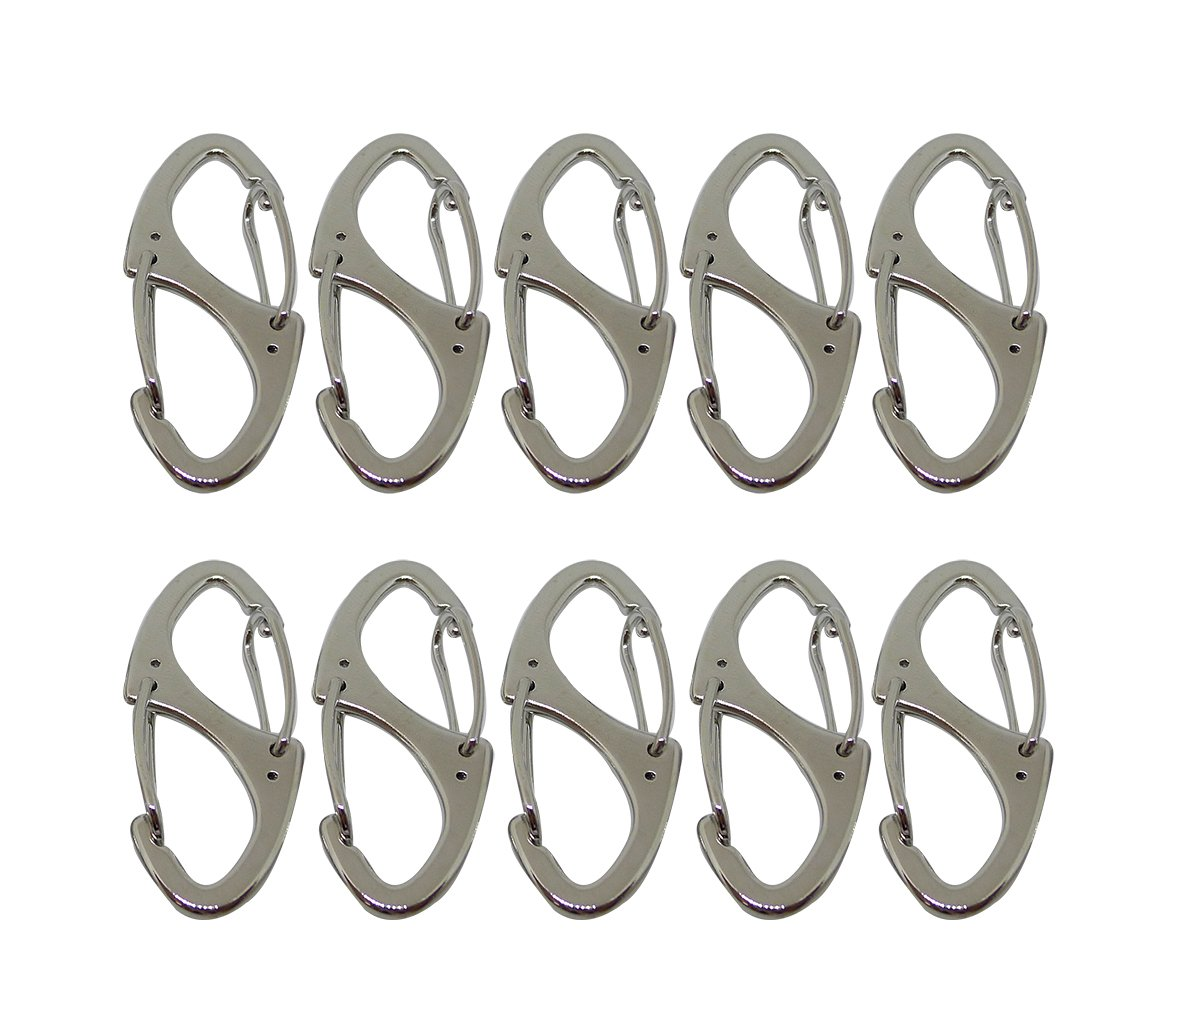 Faocean 10 pcs Small Metal Carabiner Clips Dual Spring Gate Snap Hooks Keychain Buckle Tool, Silver Black